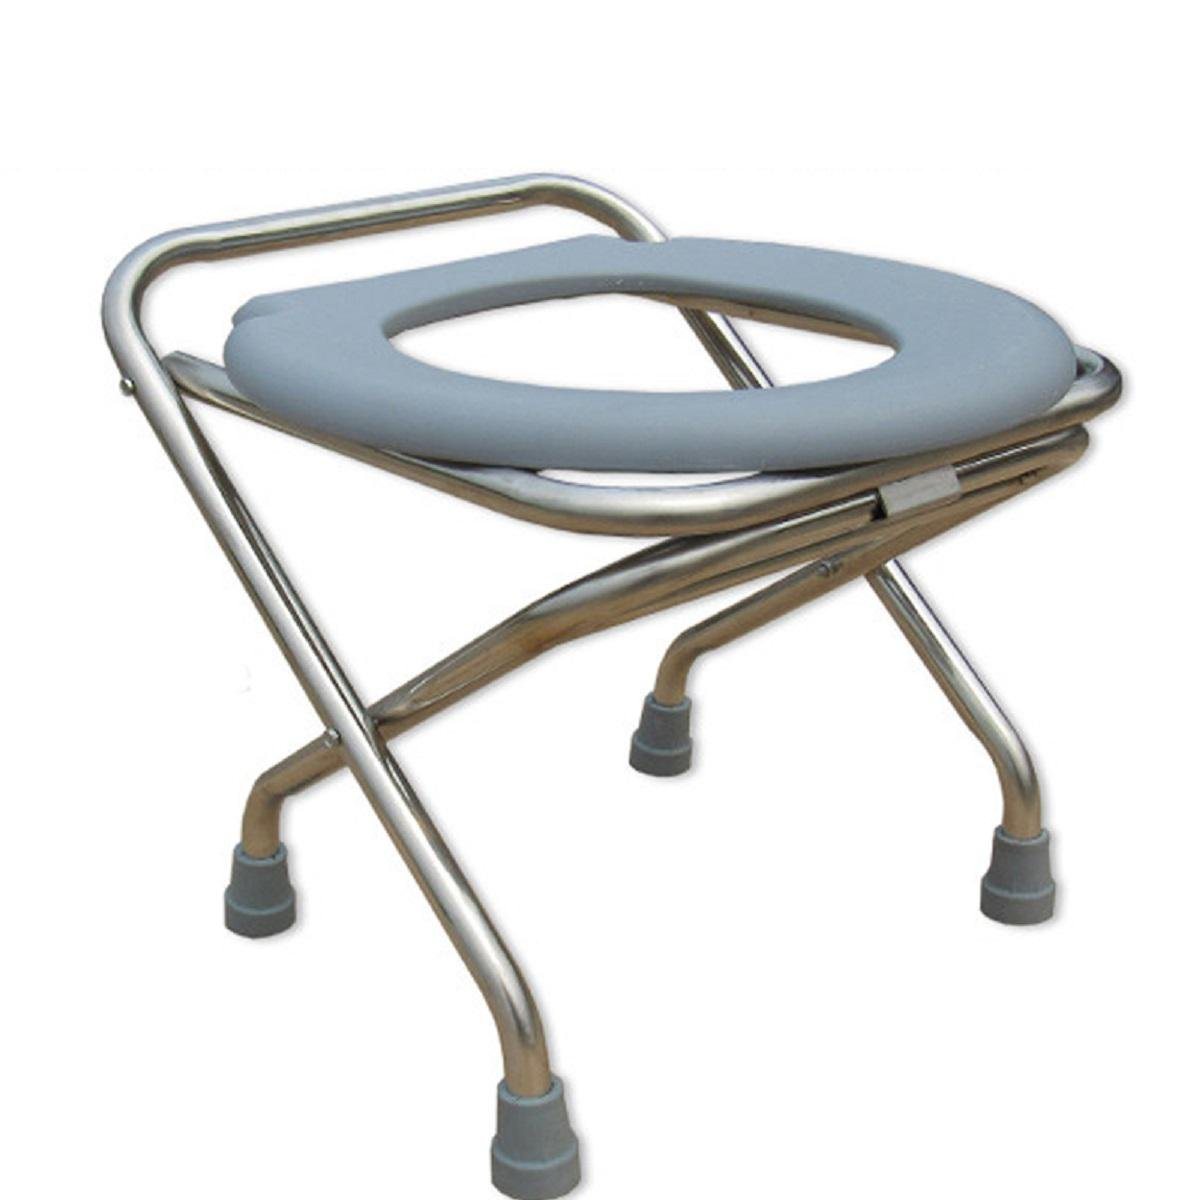 GAOJIAN Commode Chair Pregnant Woman Thickening Comfortable Toilet Stainless Steel Folding Elderly Bathing Chair